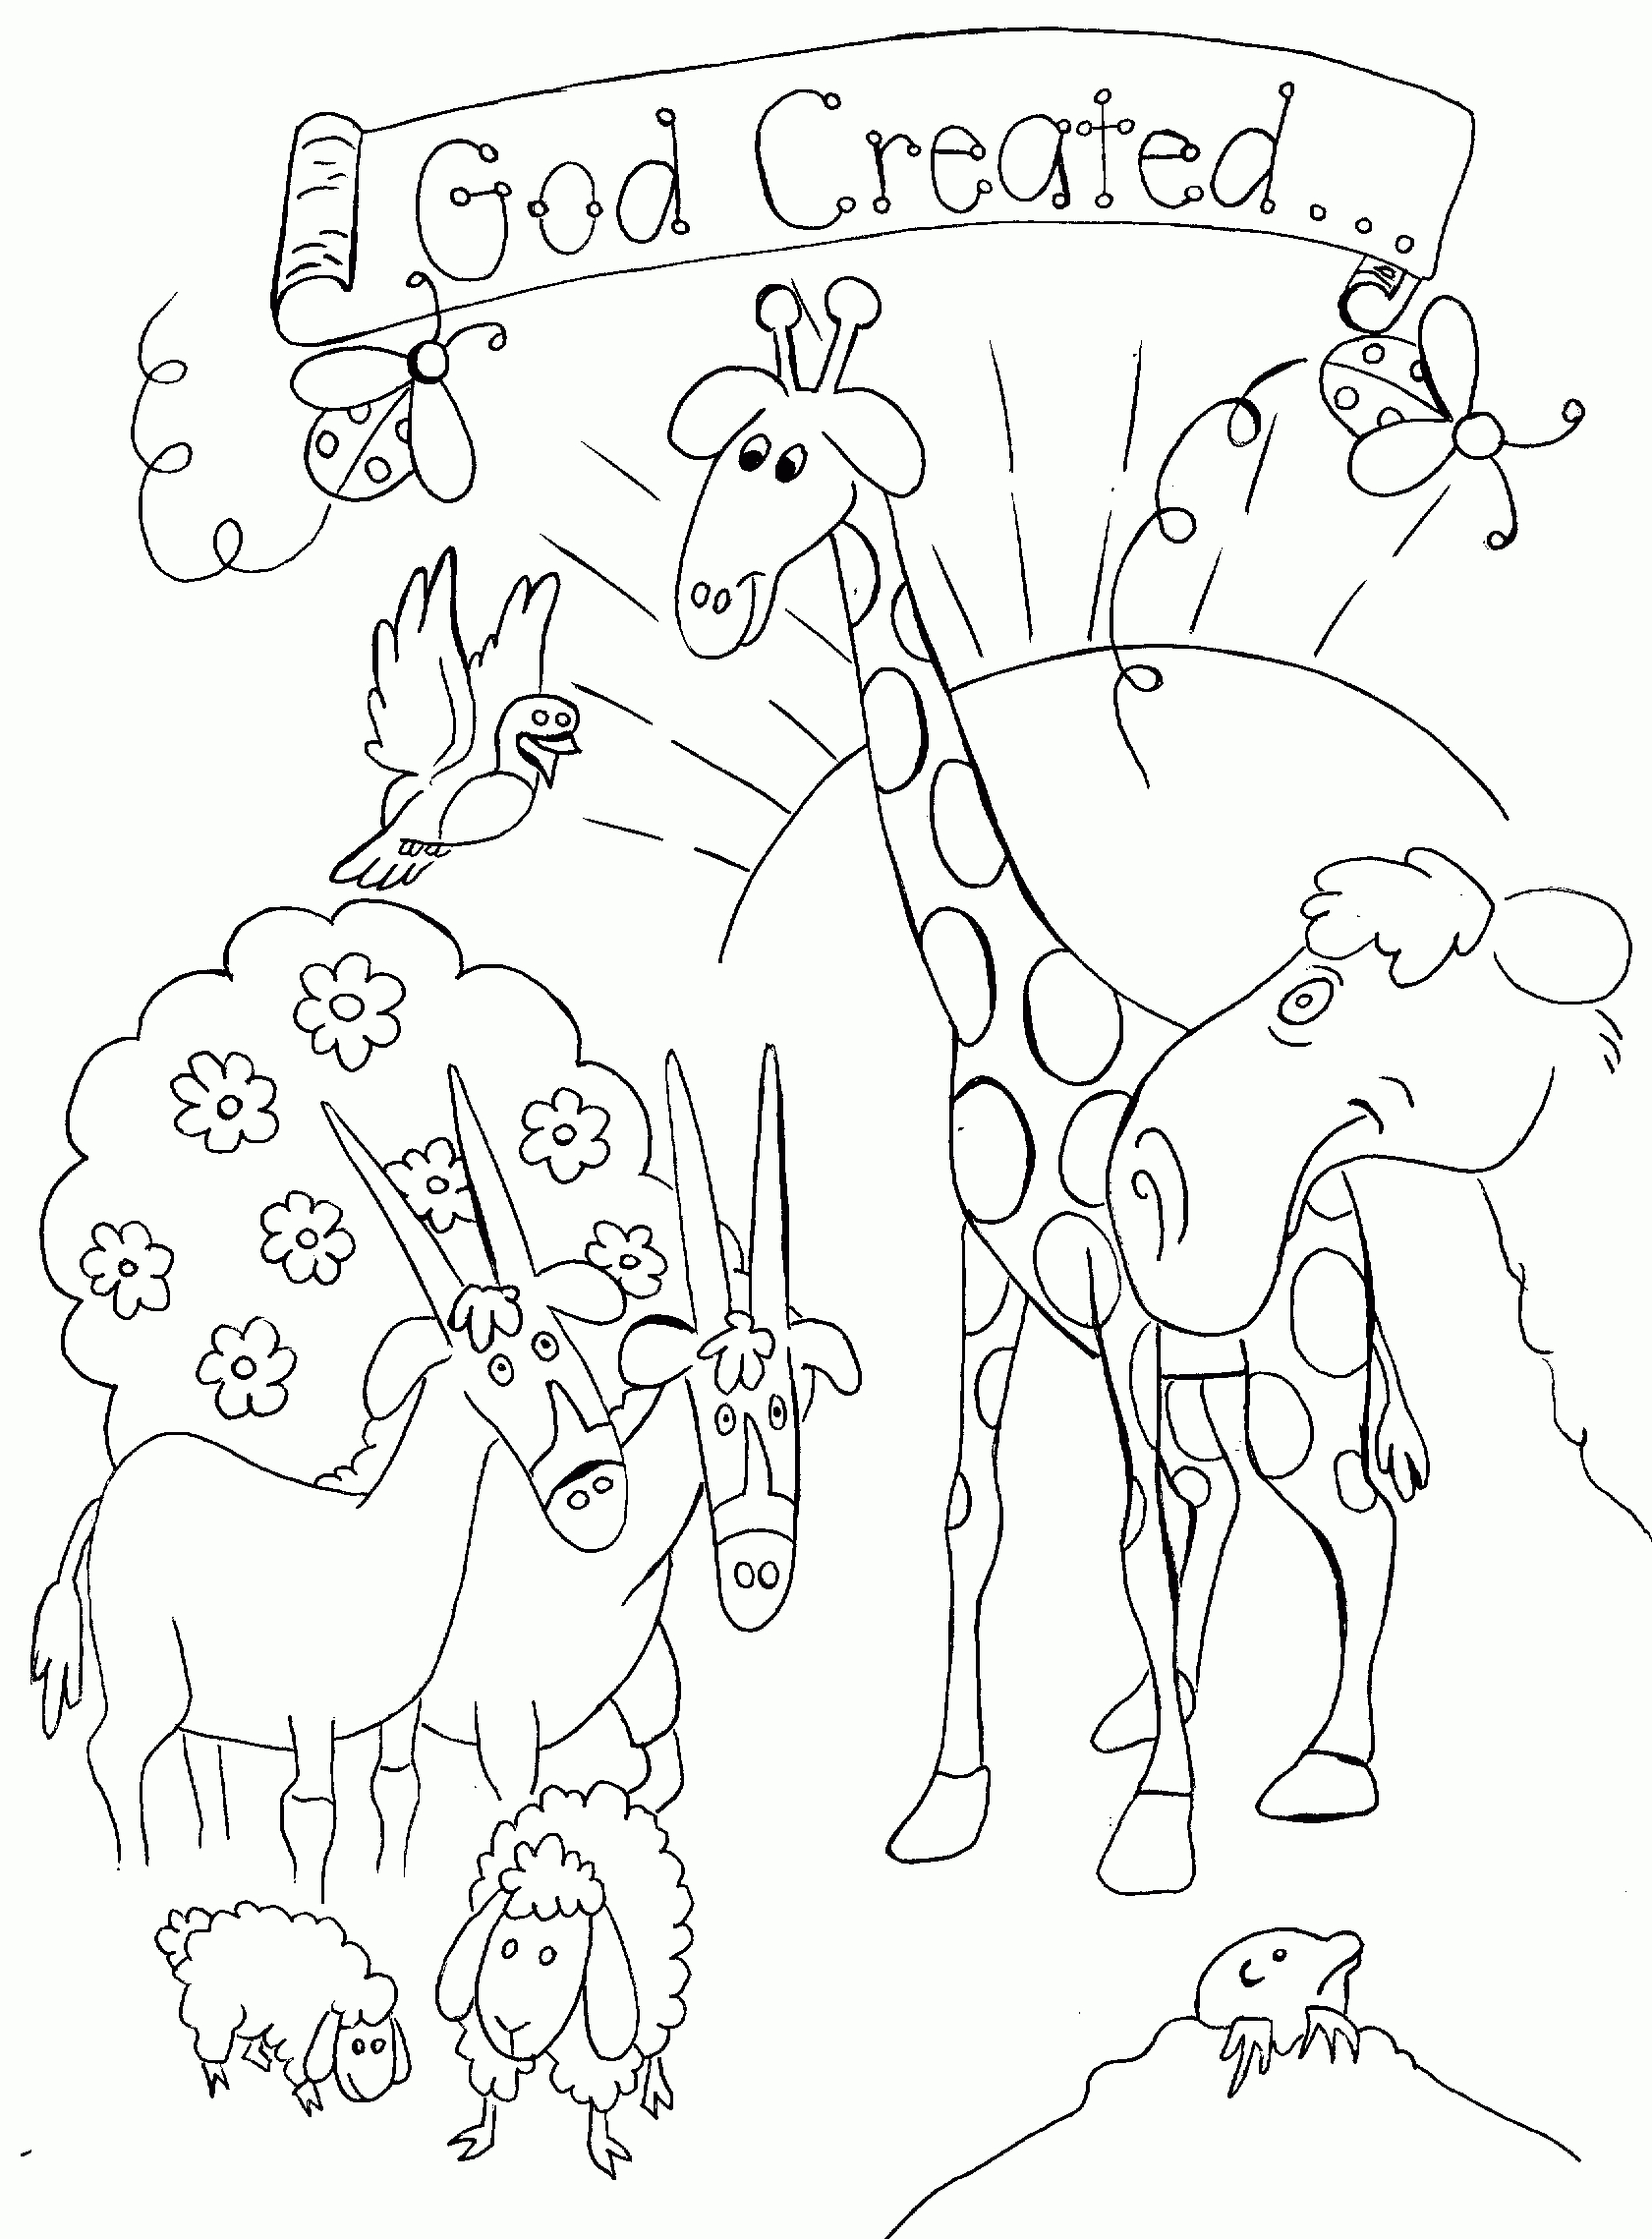 coloring bible story pictures for sunday school sunday school joseph bible coloring pages coloring bible pictures school story sunday for